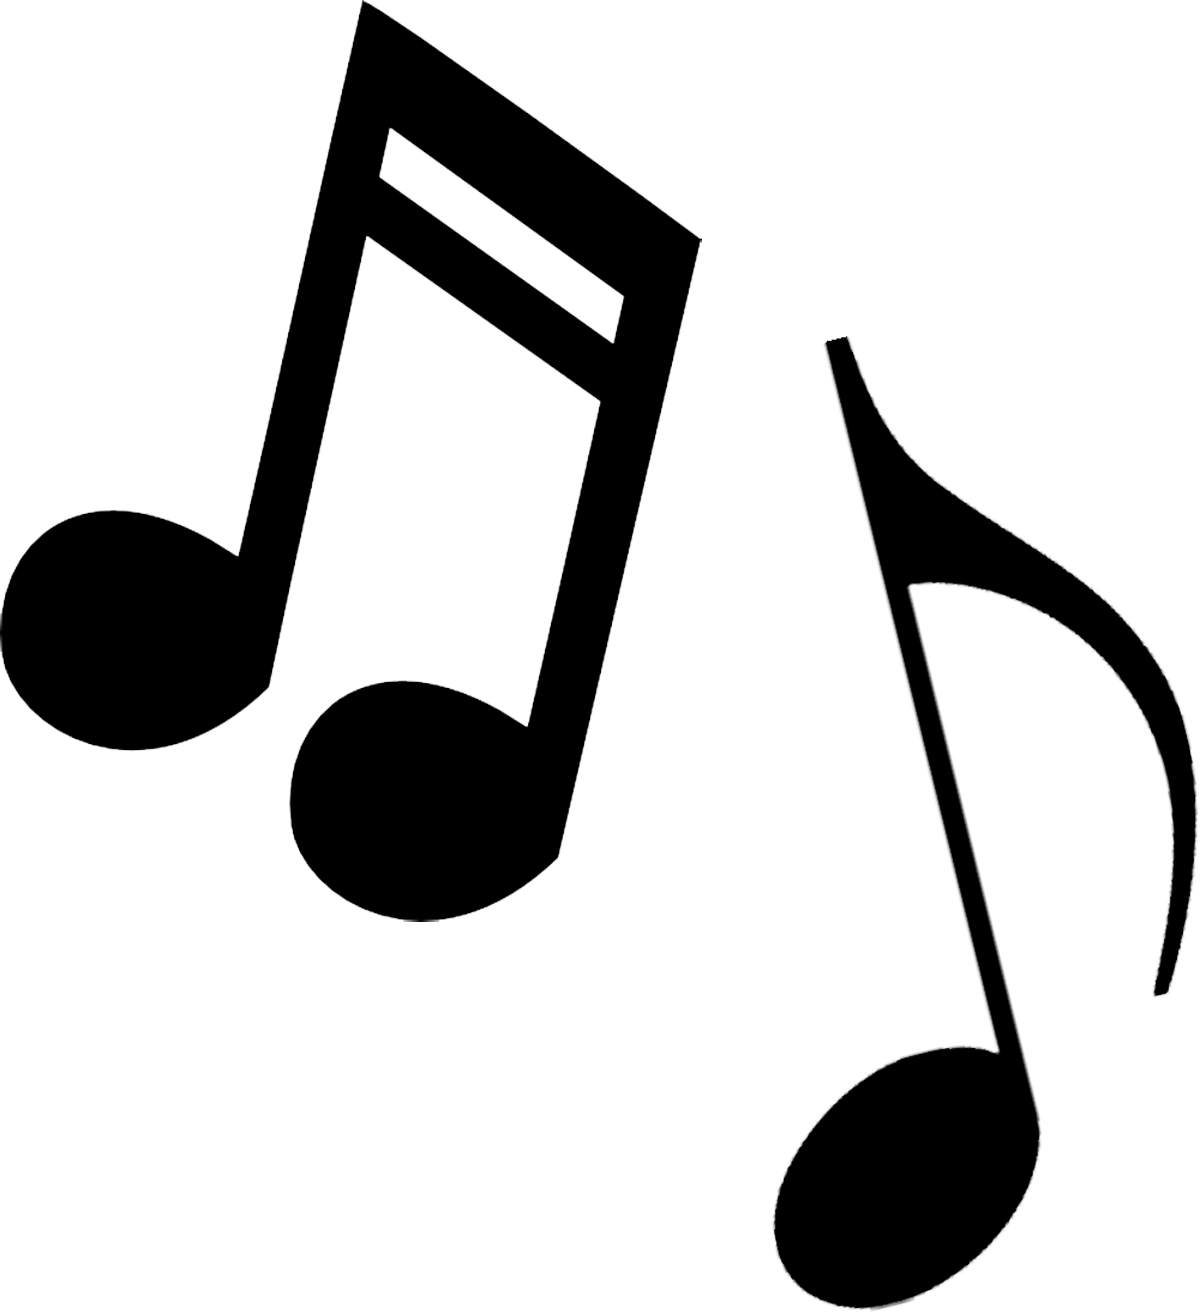 Music notes musical clip art free music note clipart image 1 3